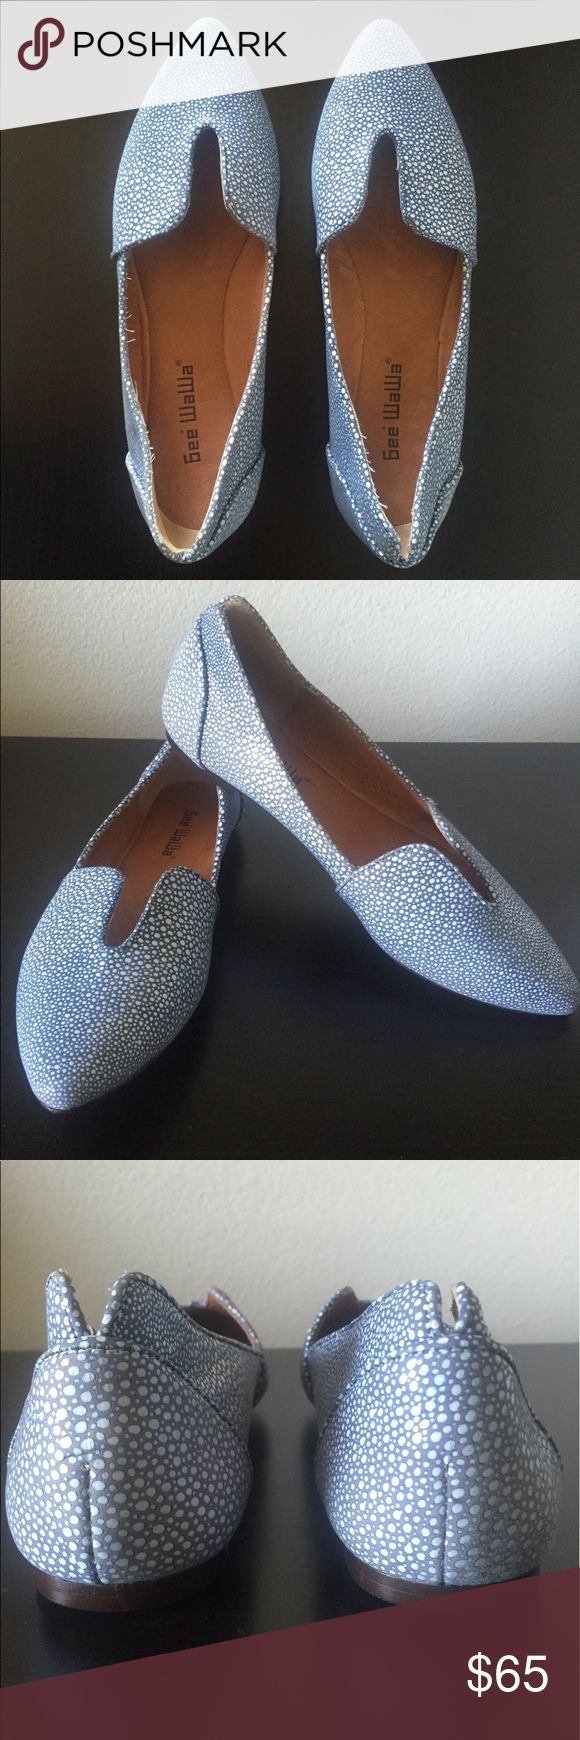 Gee Wawa Lydia Cutout Flats Like new Gee Wawa blue and white flats from Anthropologie. Leather. Excellent condition. Anthropologie Shoes Flats & Loafers